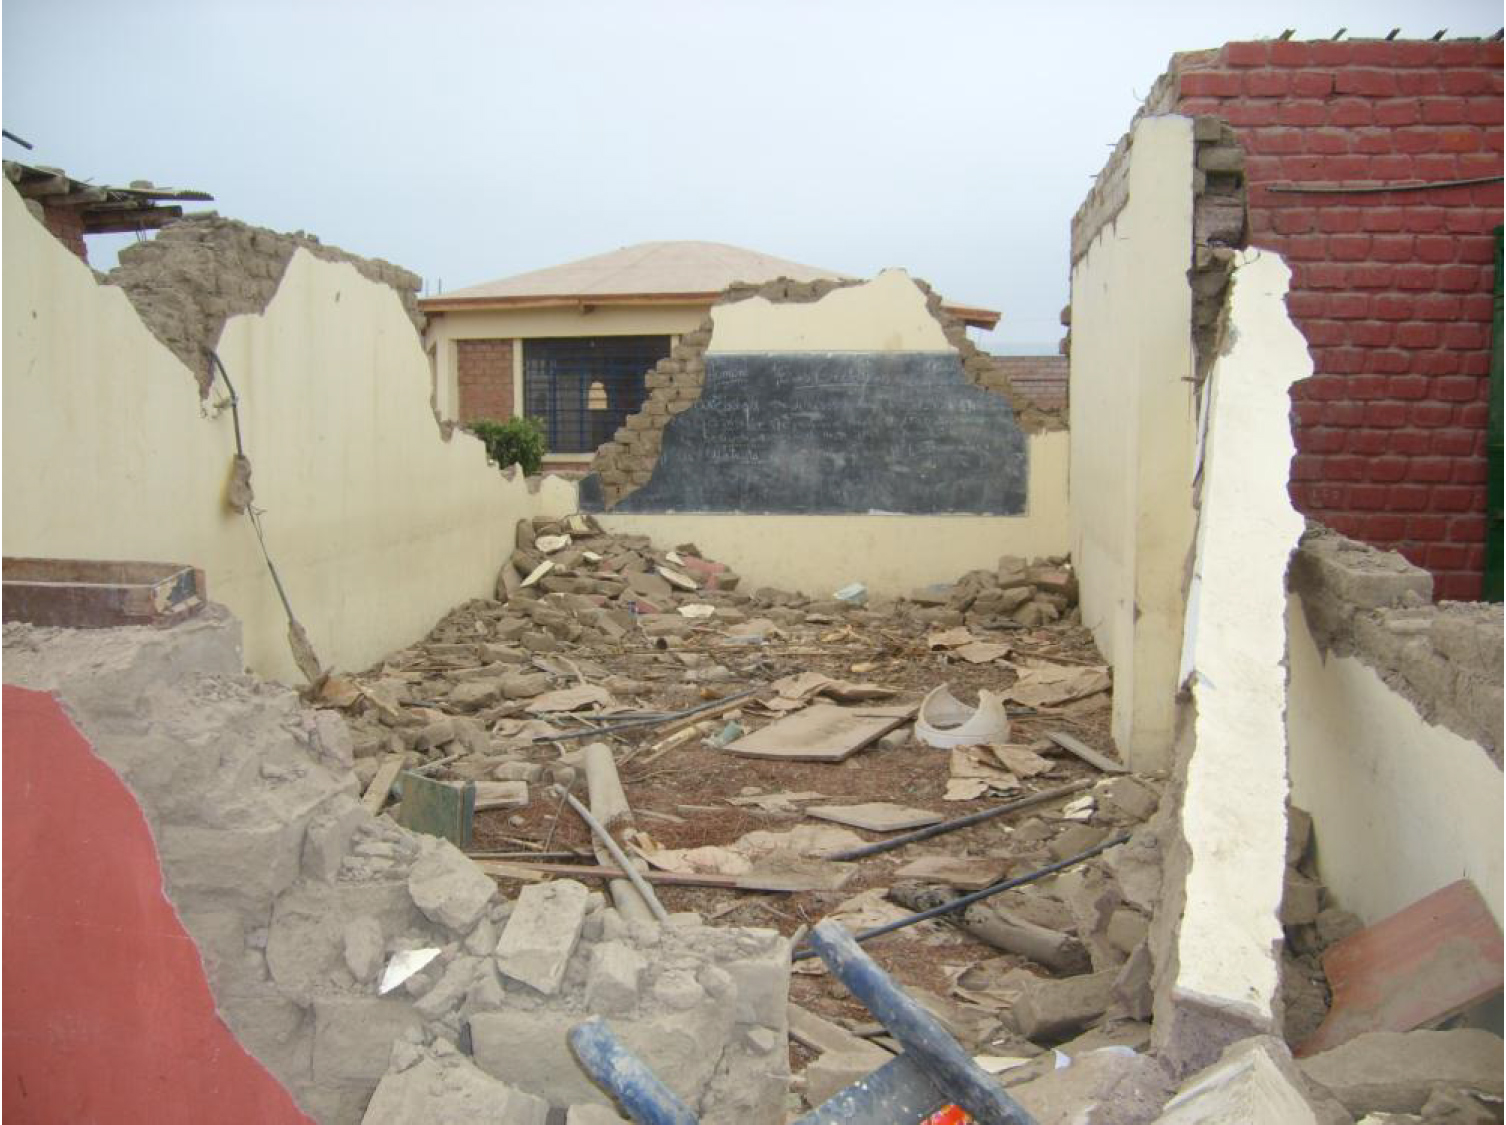 Destruction caused by 2007 Pisco Earthquake, Photo by Juan Carlos Lam